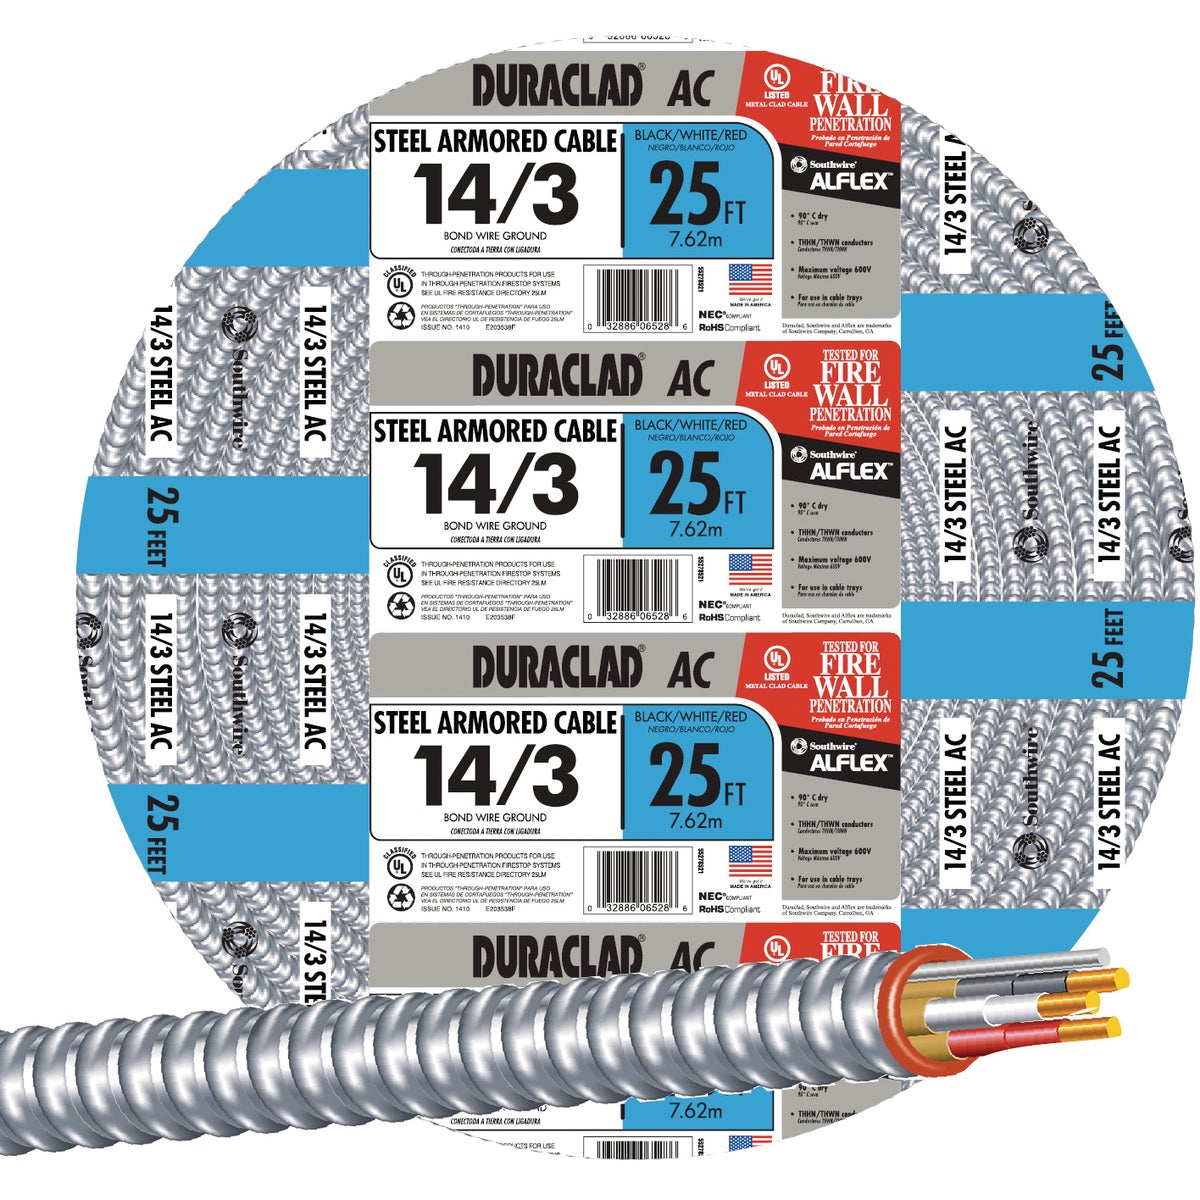 25' 14/3 STL ARMOR CABLE - 55278521 by Southwire Company